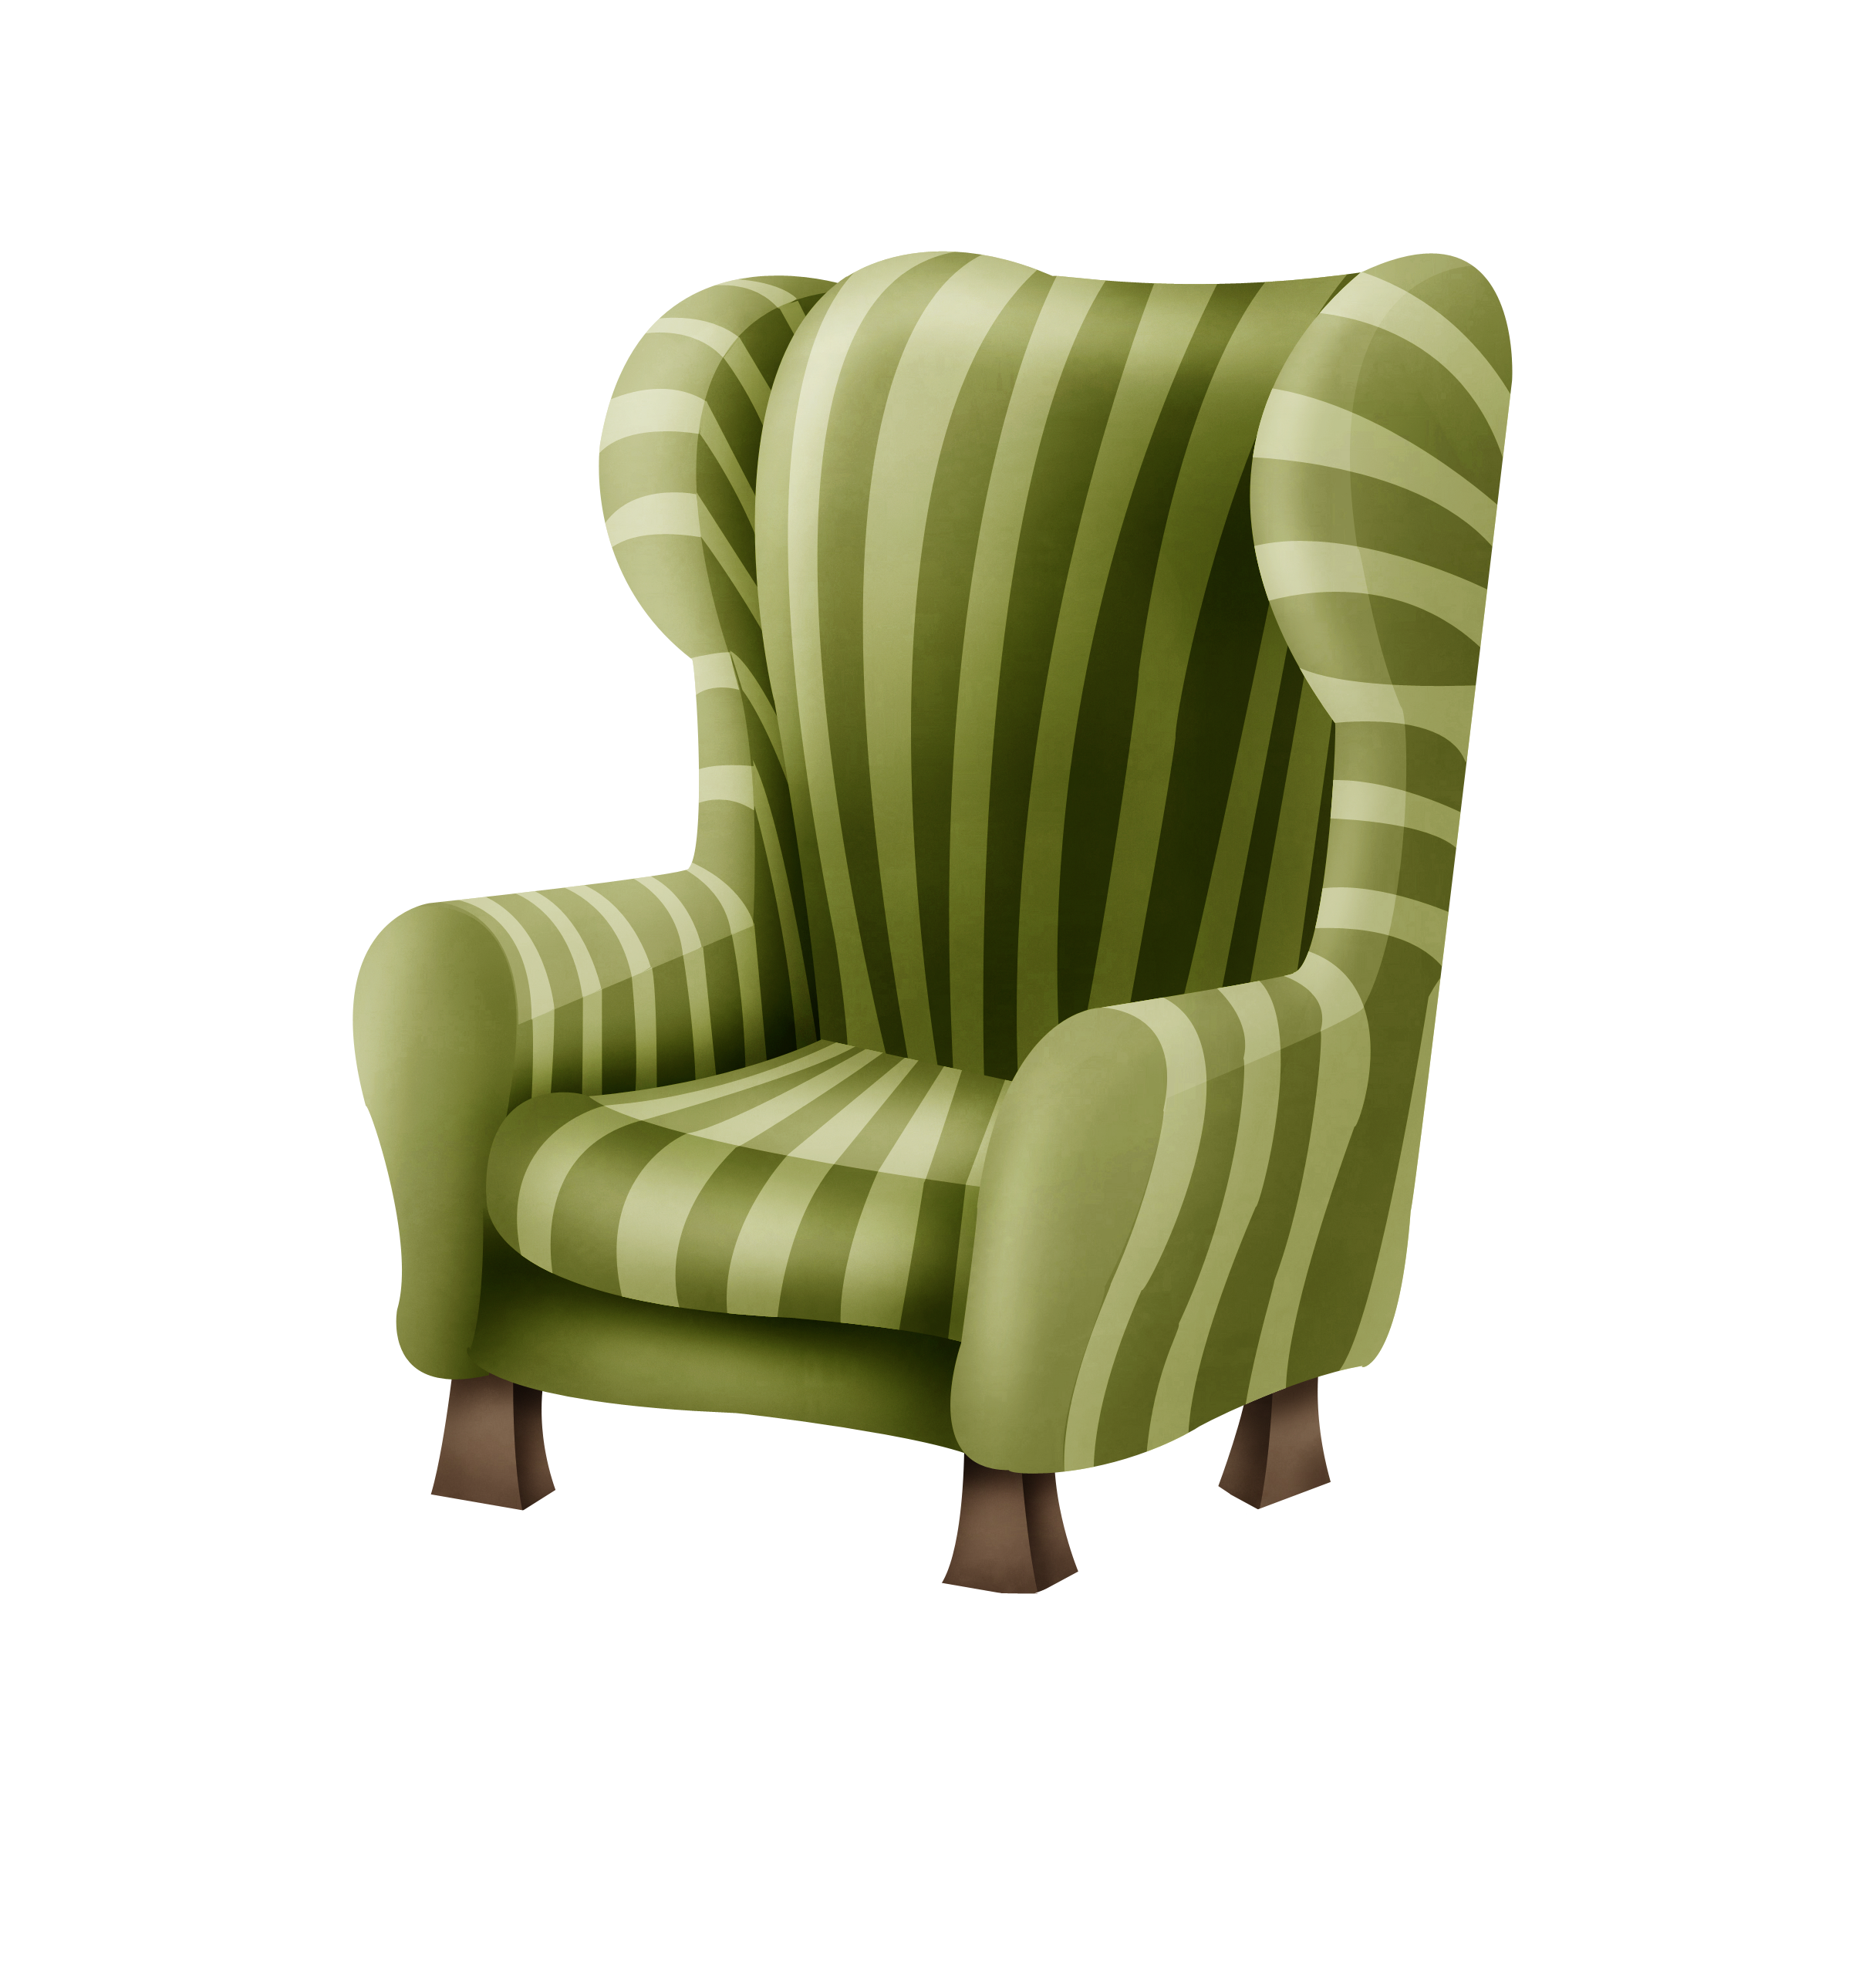 tubes chaise fauteuil rocking chair page 40. Black Bedroom Furniture Sets. Home Design Ideas